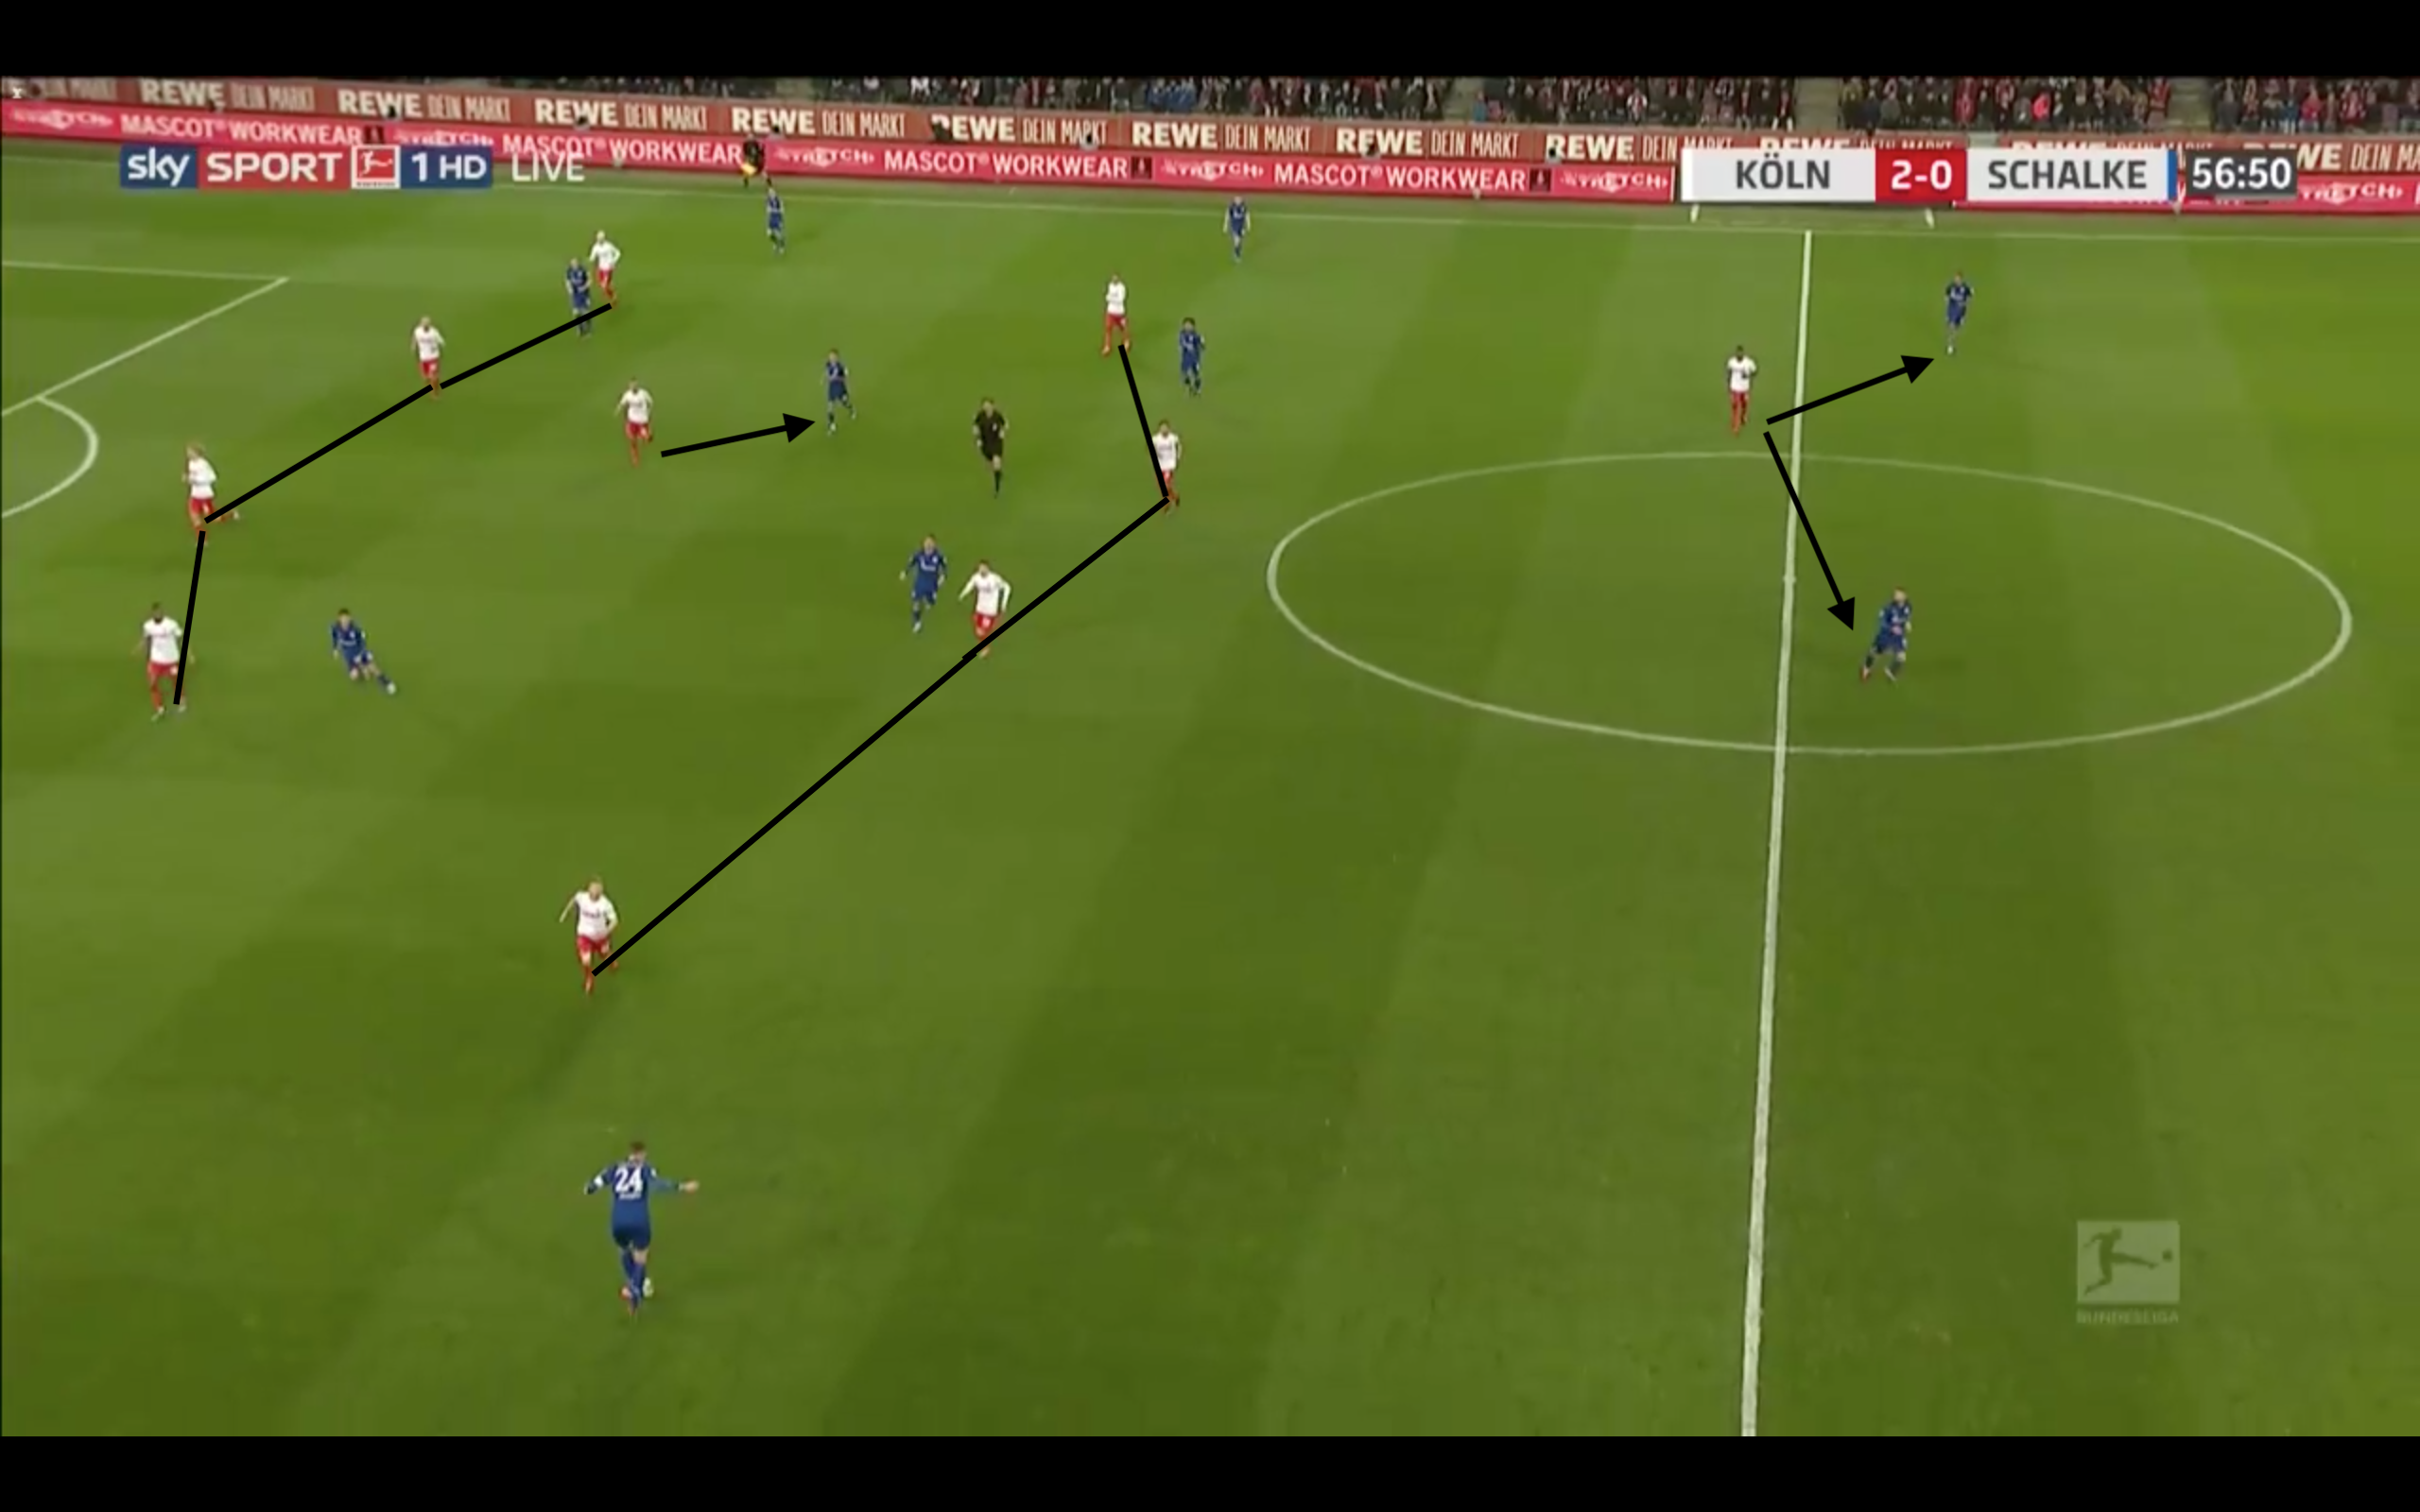 Bundesliga 2019/20: 1. FC Köln vs Schalke 04 – tactical analysis tactics